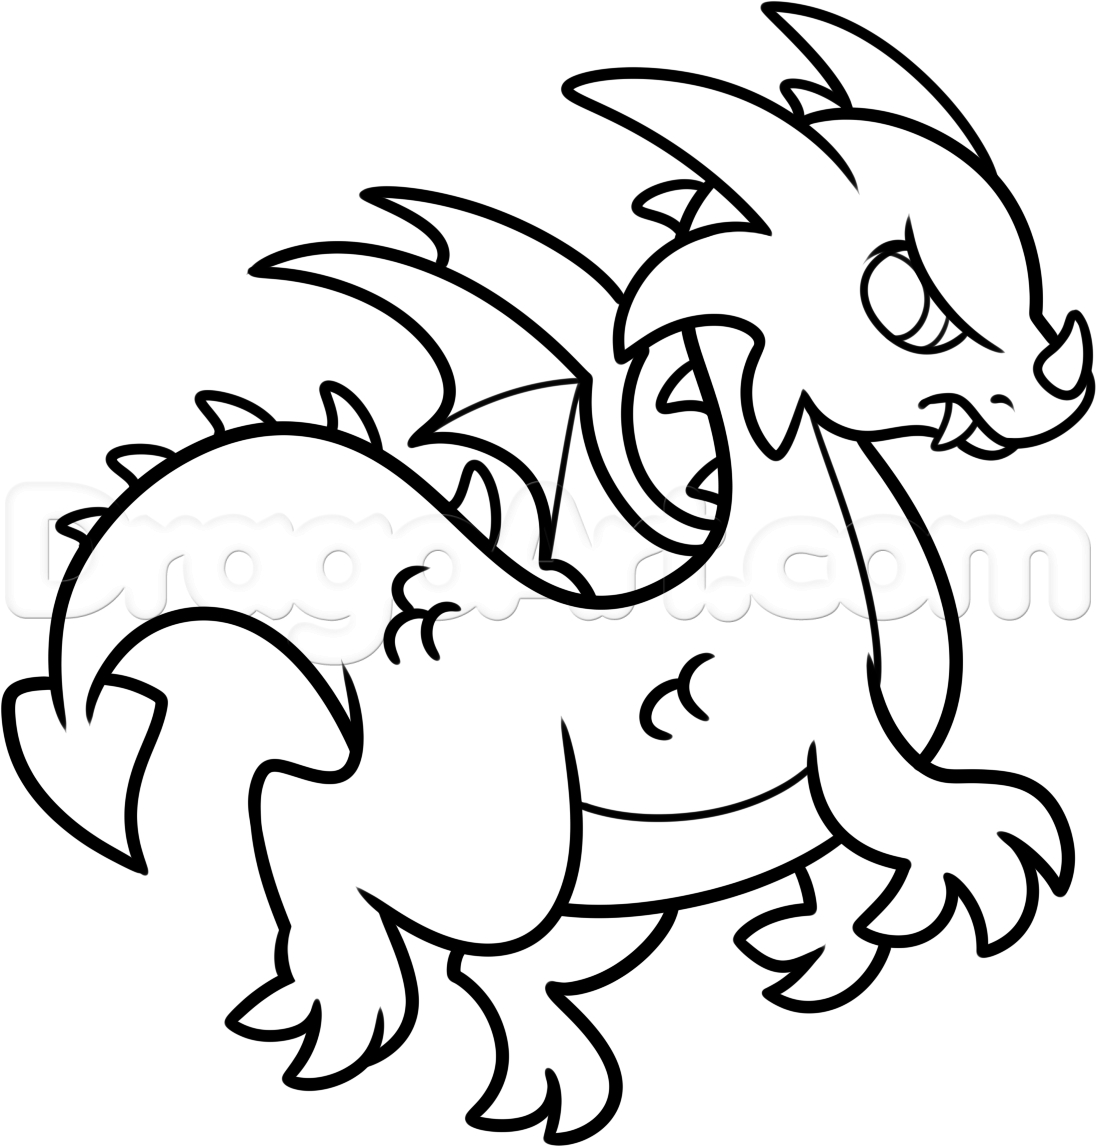 1096x1146 Dragon Easy Drawing How To Draw A Simple Dragon, Stepstep, Dragons